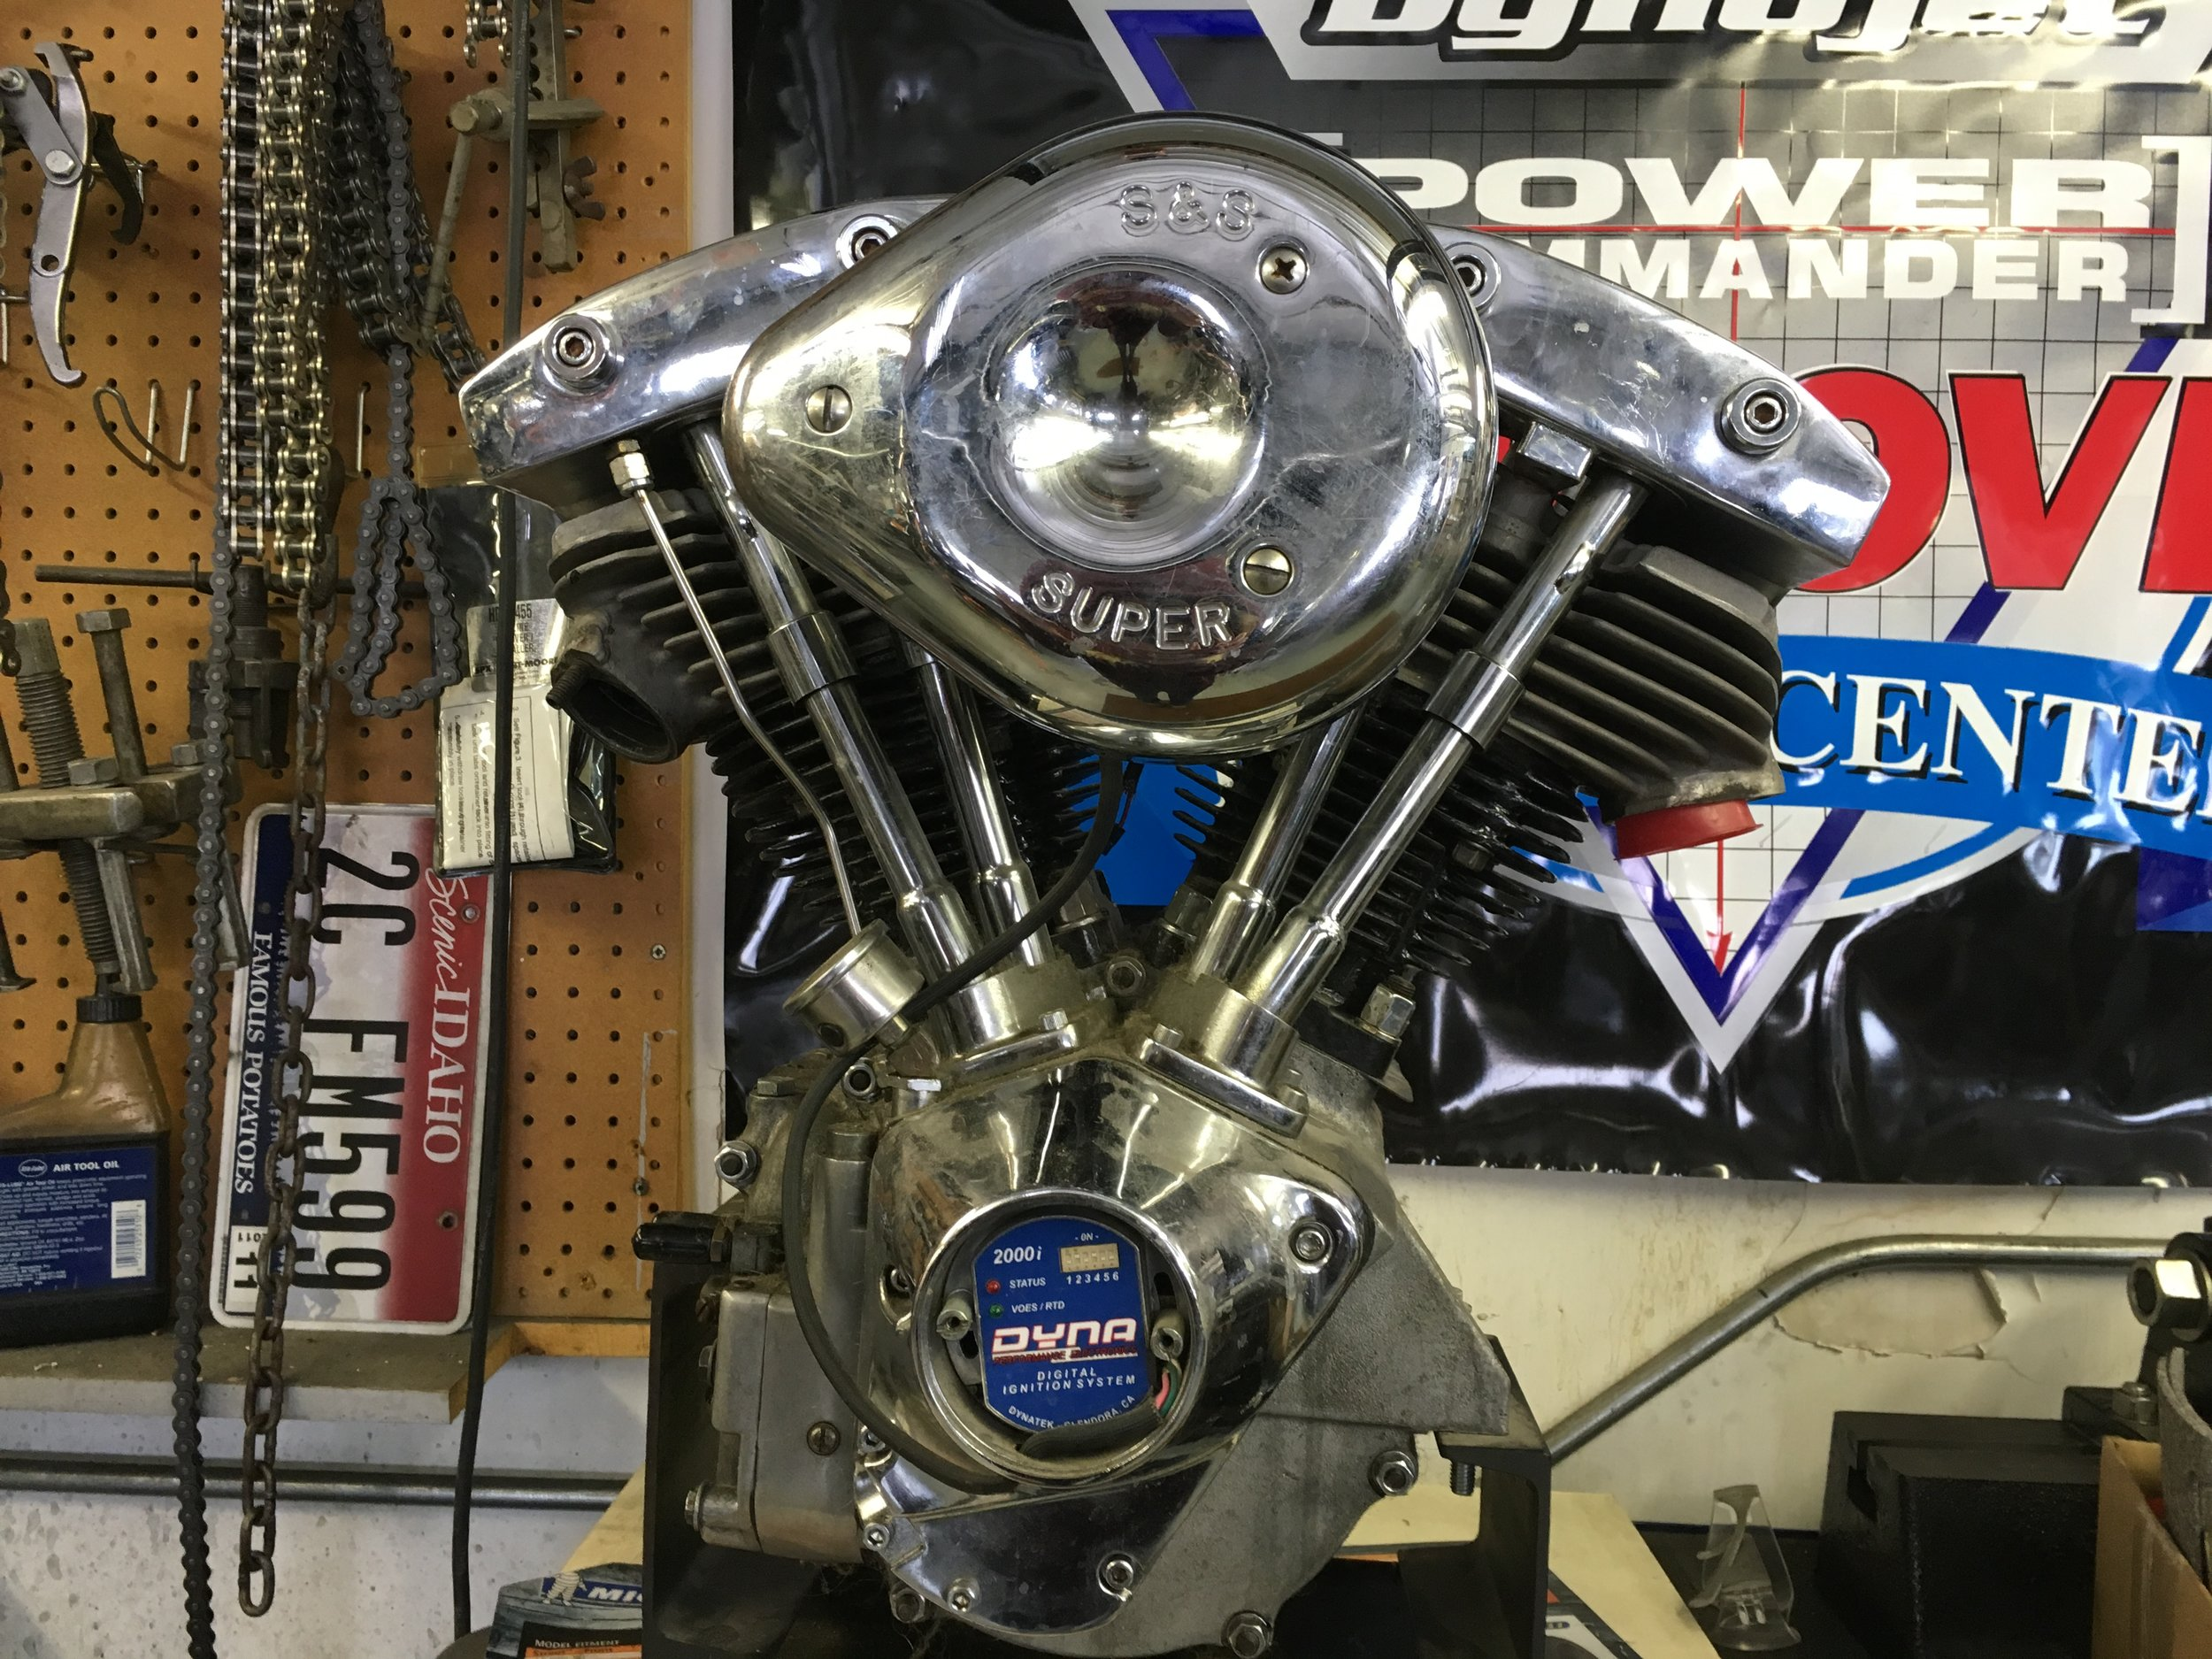 SHOVELHEAD MOTOR FOR RESTORATION PROJECT...NOW YER TALKIN'!